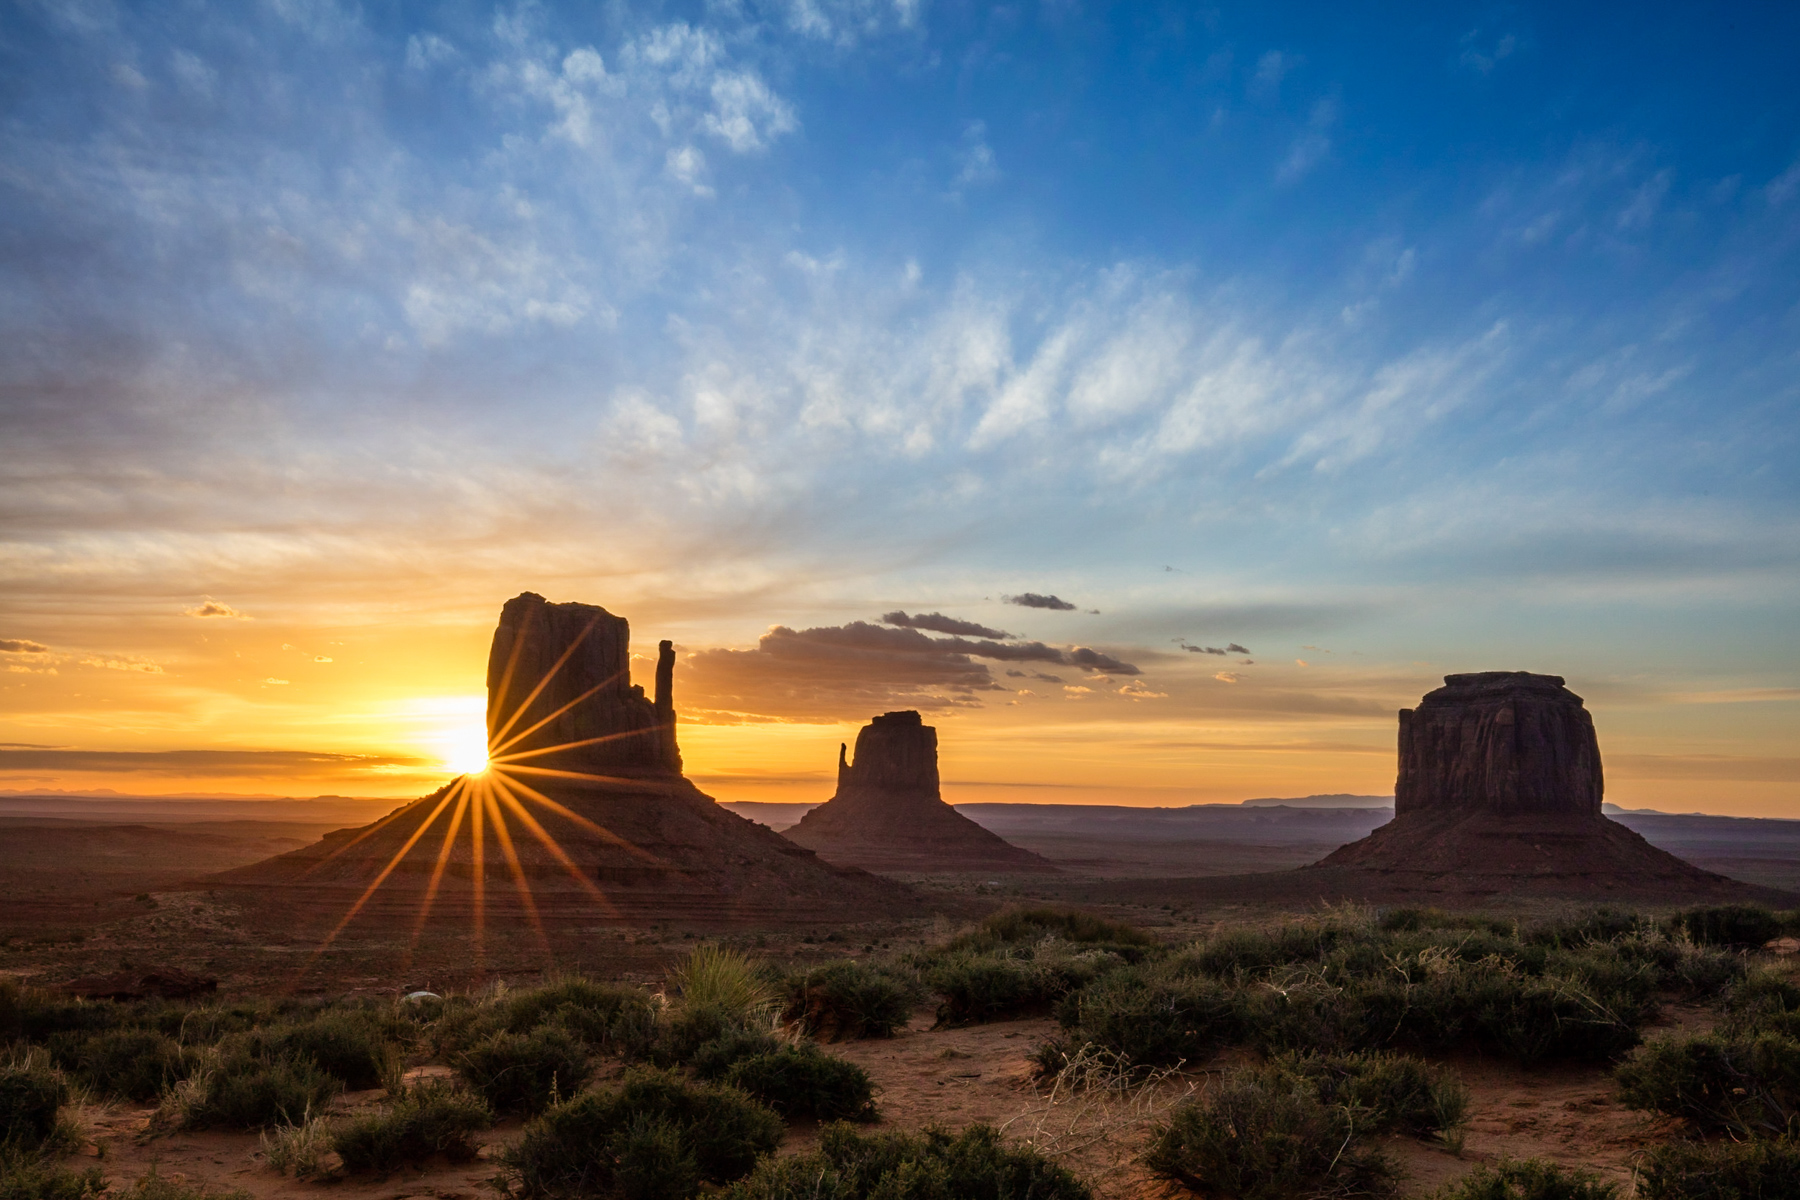 Sunrise with sunburst in Monument Valley, Utah.